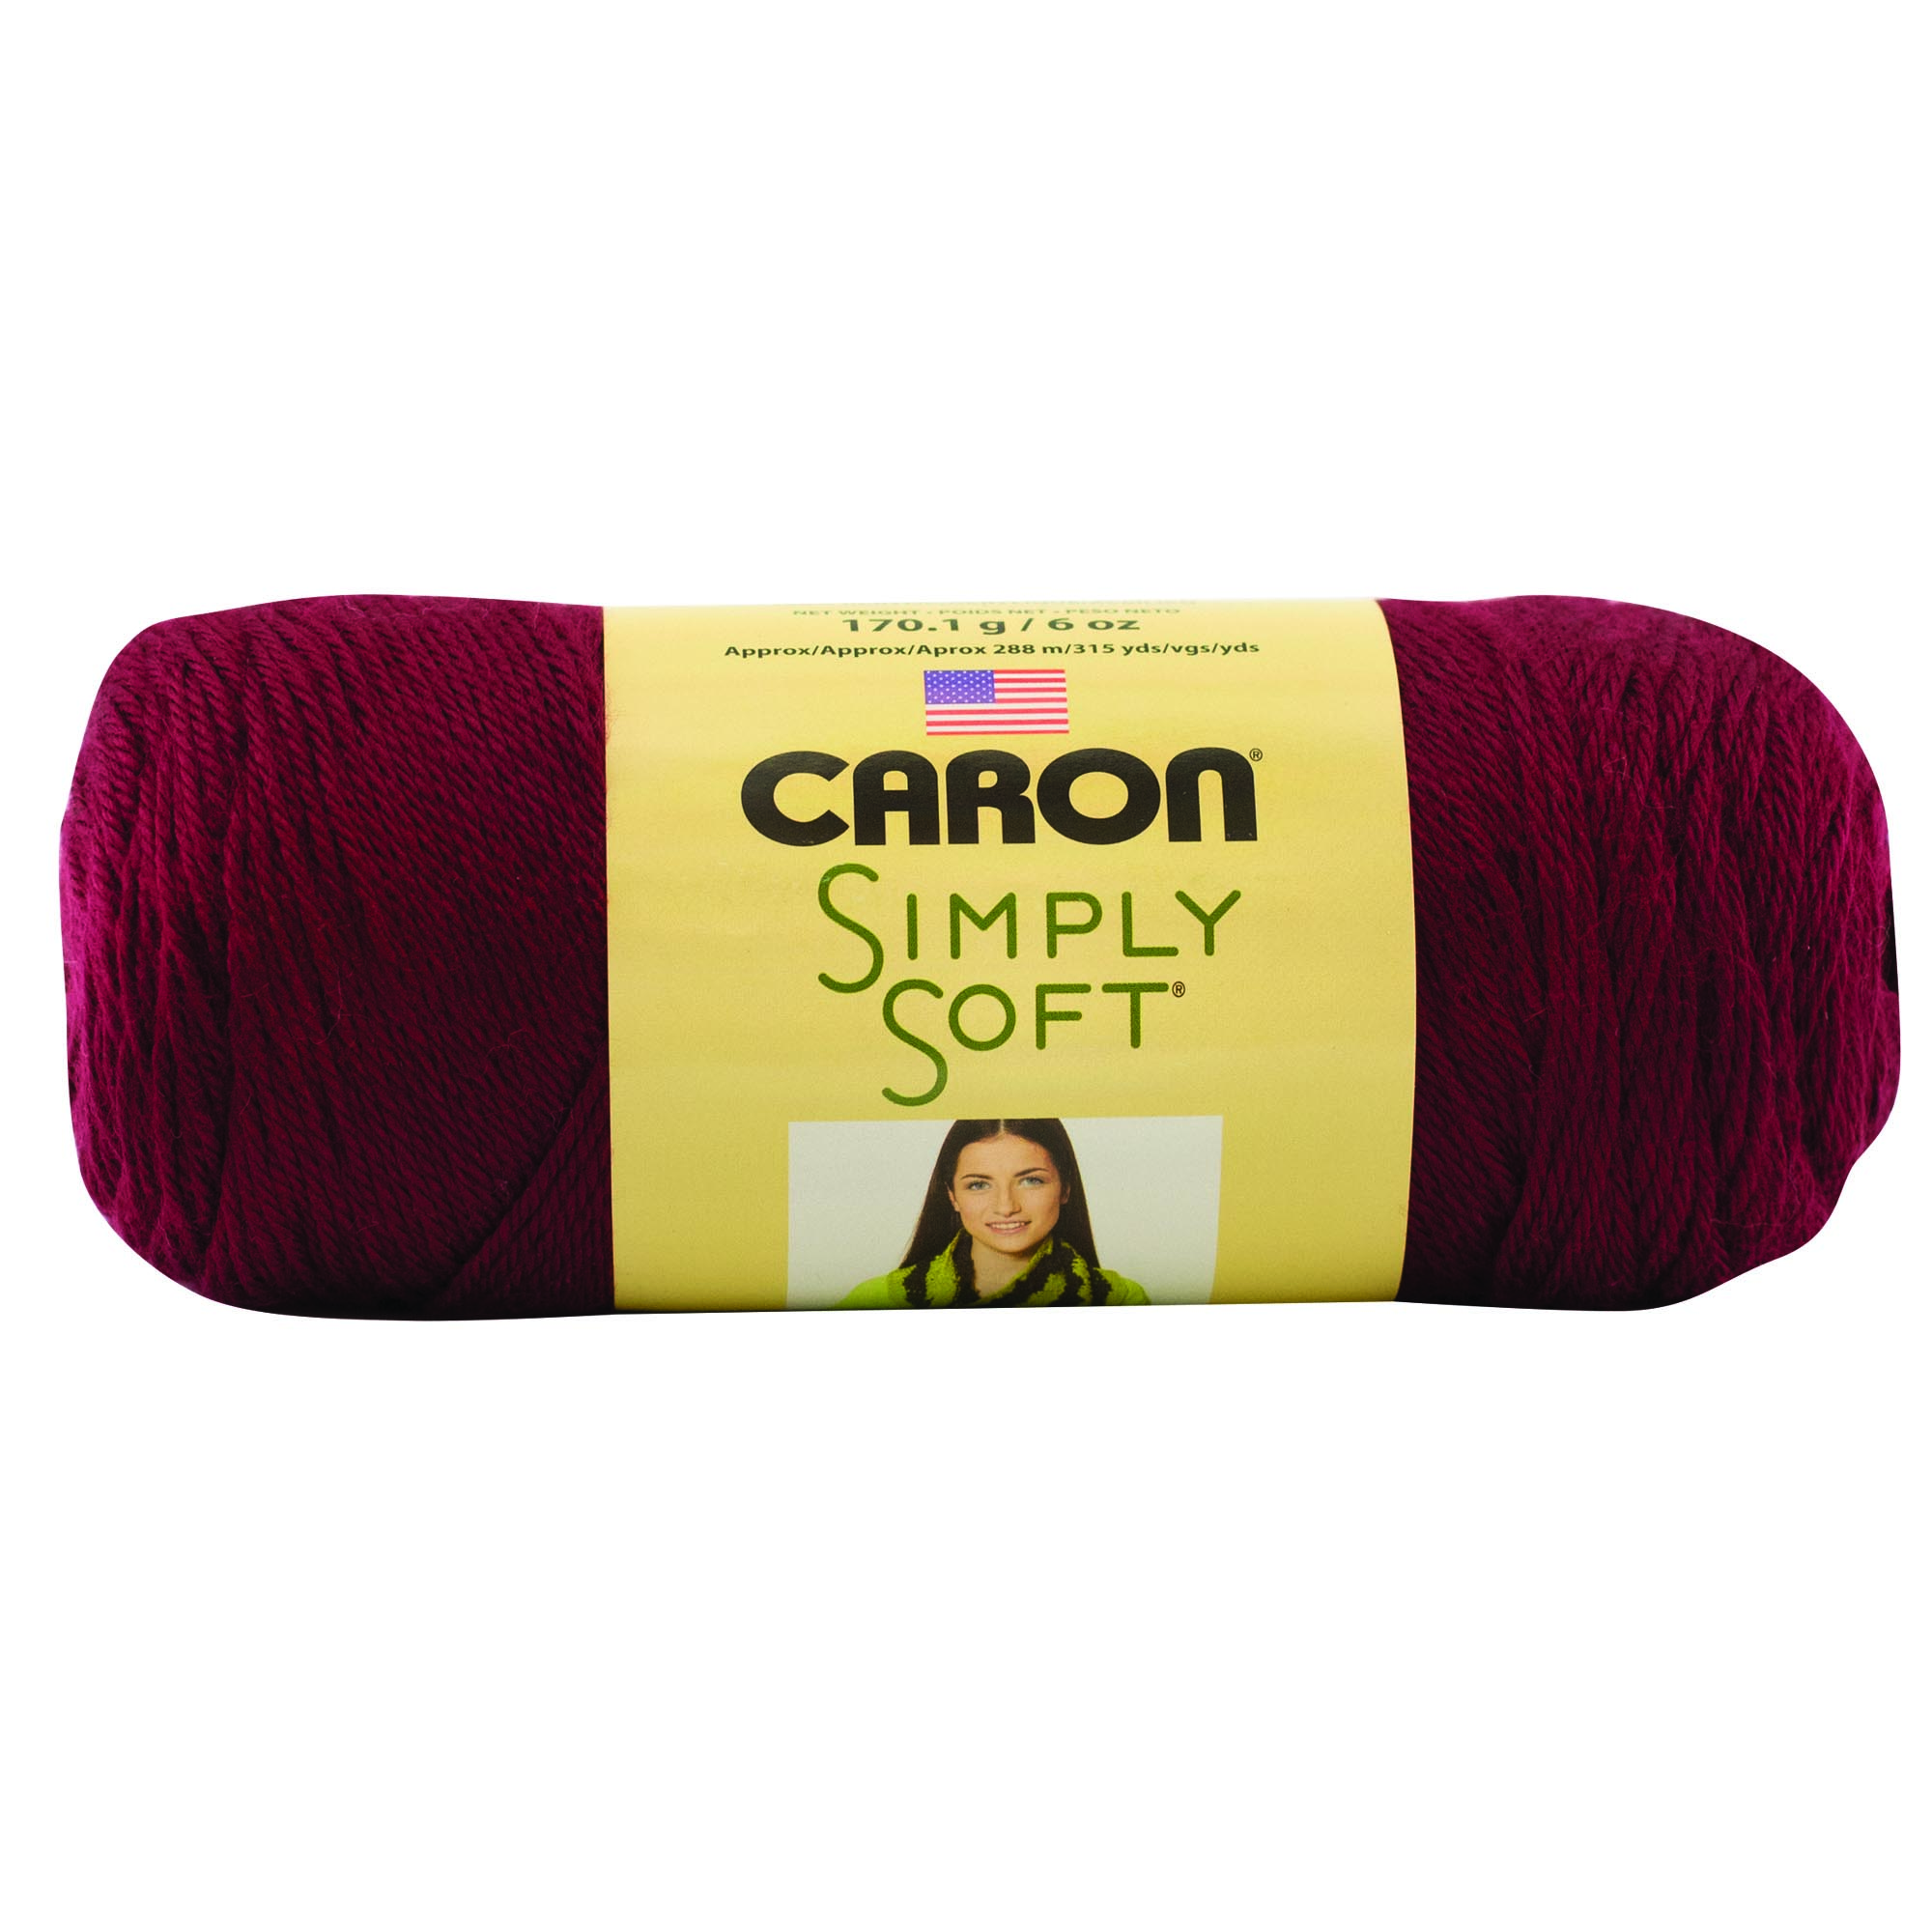 Caron Simply Soft Burgundy 3-6Oz